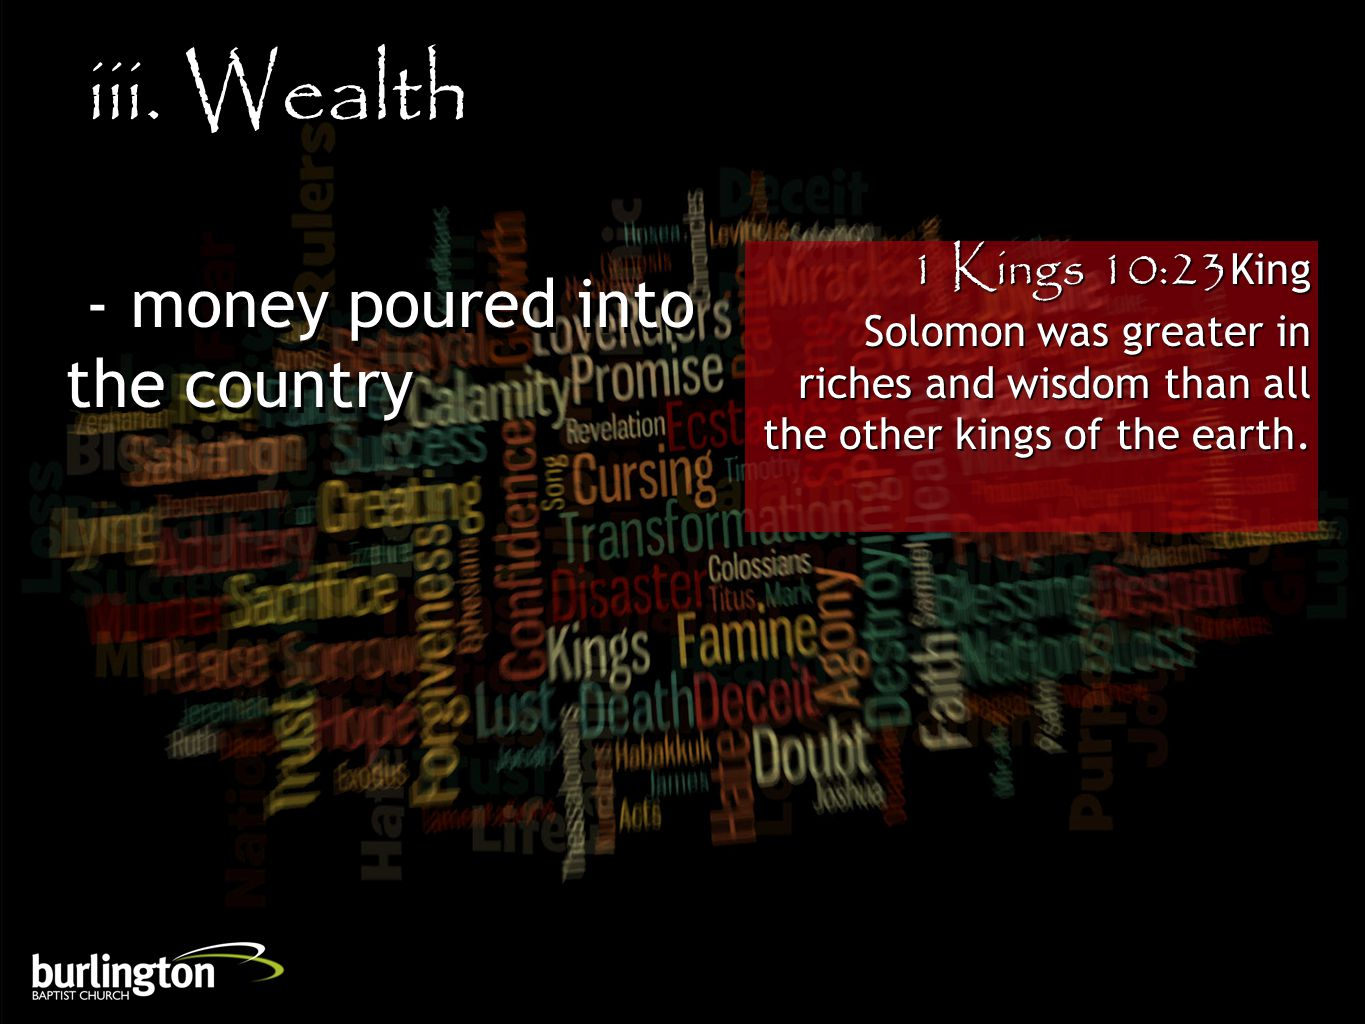 1 Kings 10:23King Solomon was greater in riches and wisdom than all the other kings of the earth.